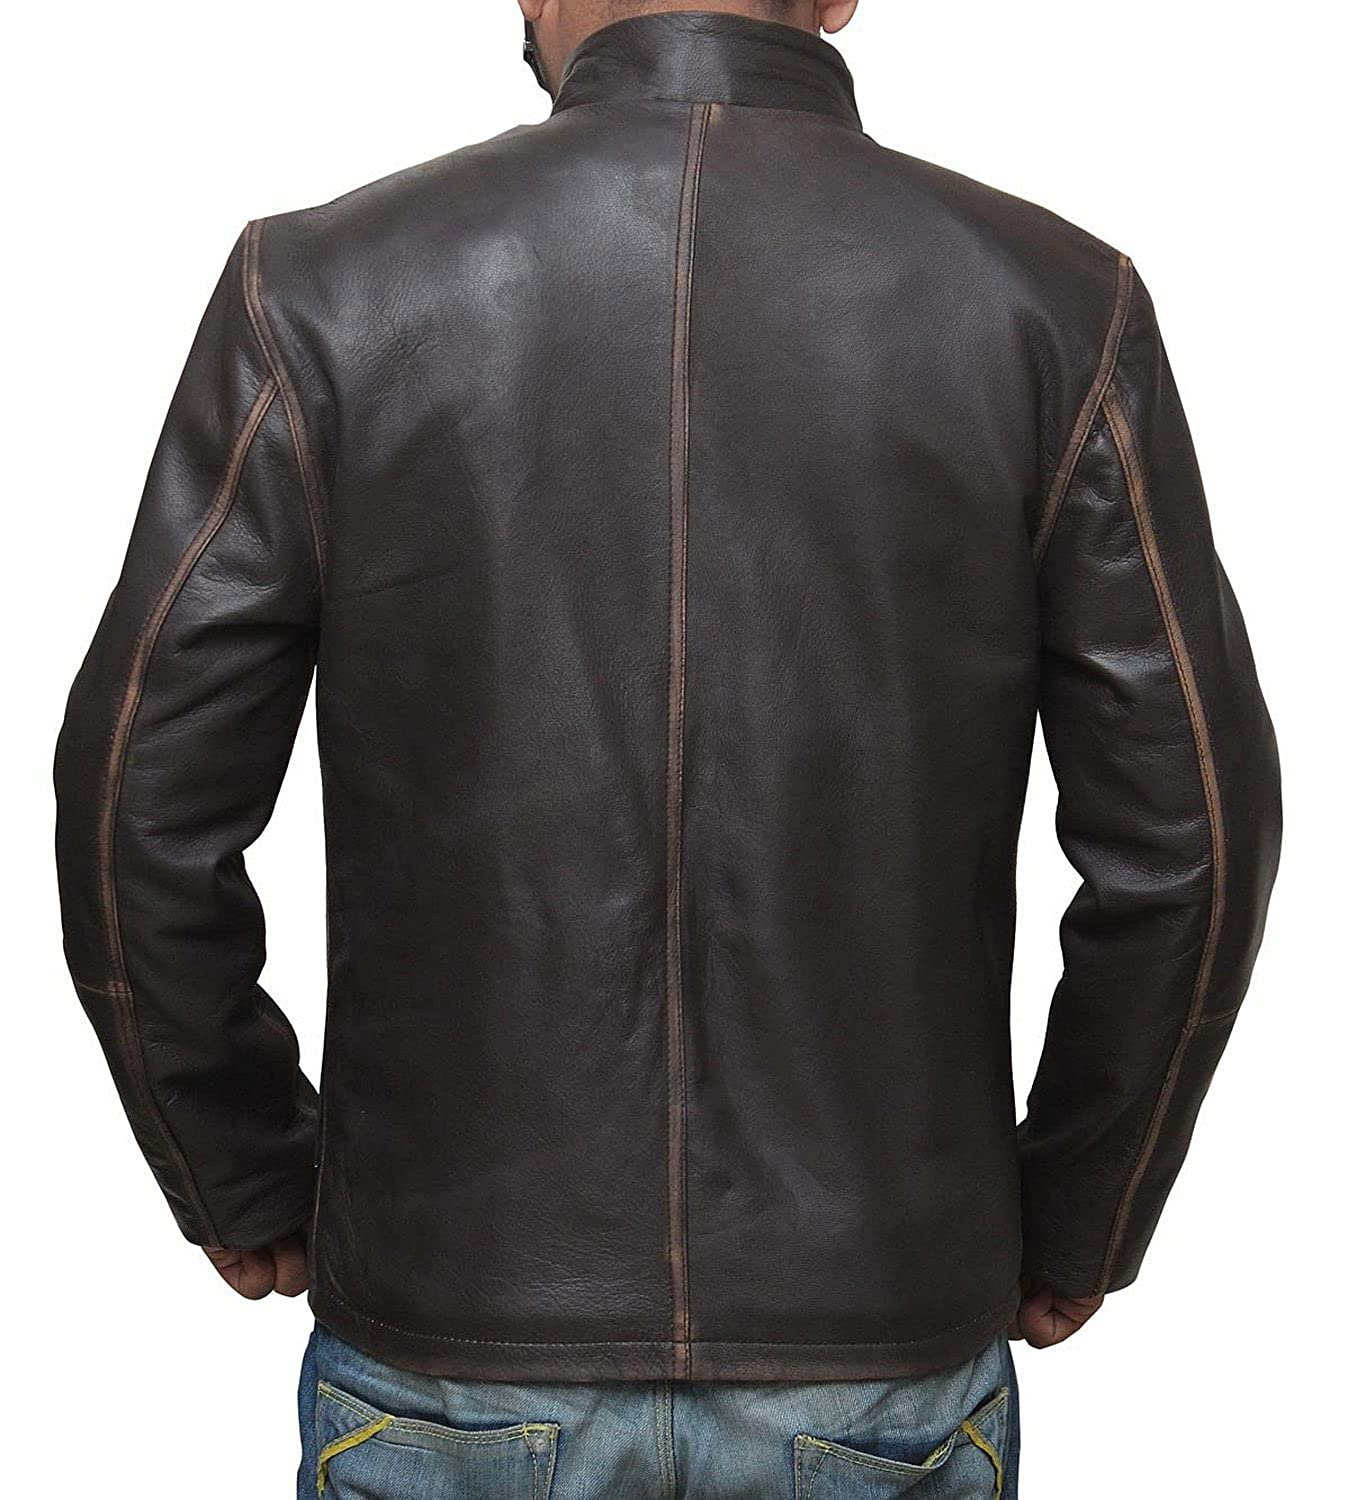 Leather jacket repair toronto - Star Wars Han Solo Leather Jacket Best Seller At Amazon Men S Clothing Store